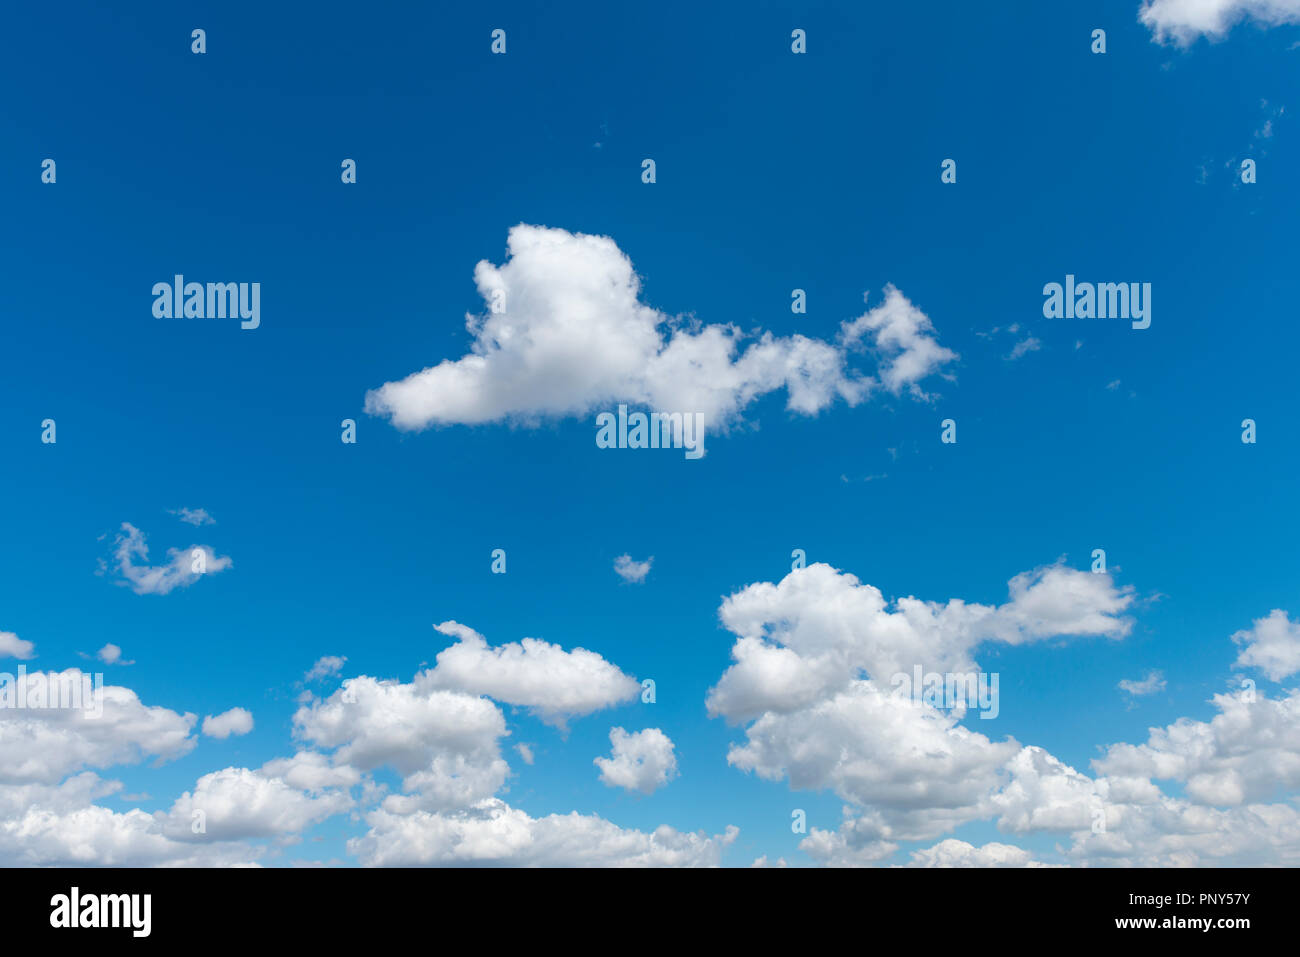 Small clouds with blue sky, fair weather clouds, Andalusia, Spain - Stock Image